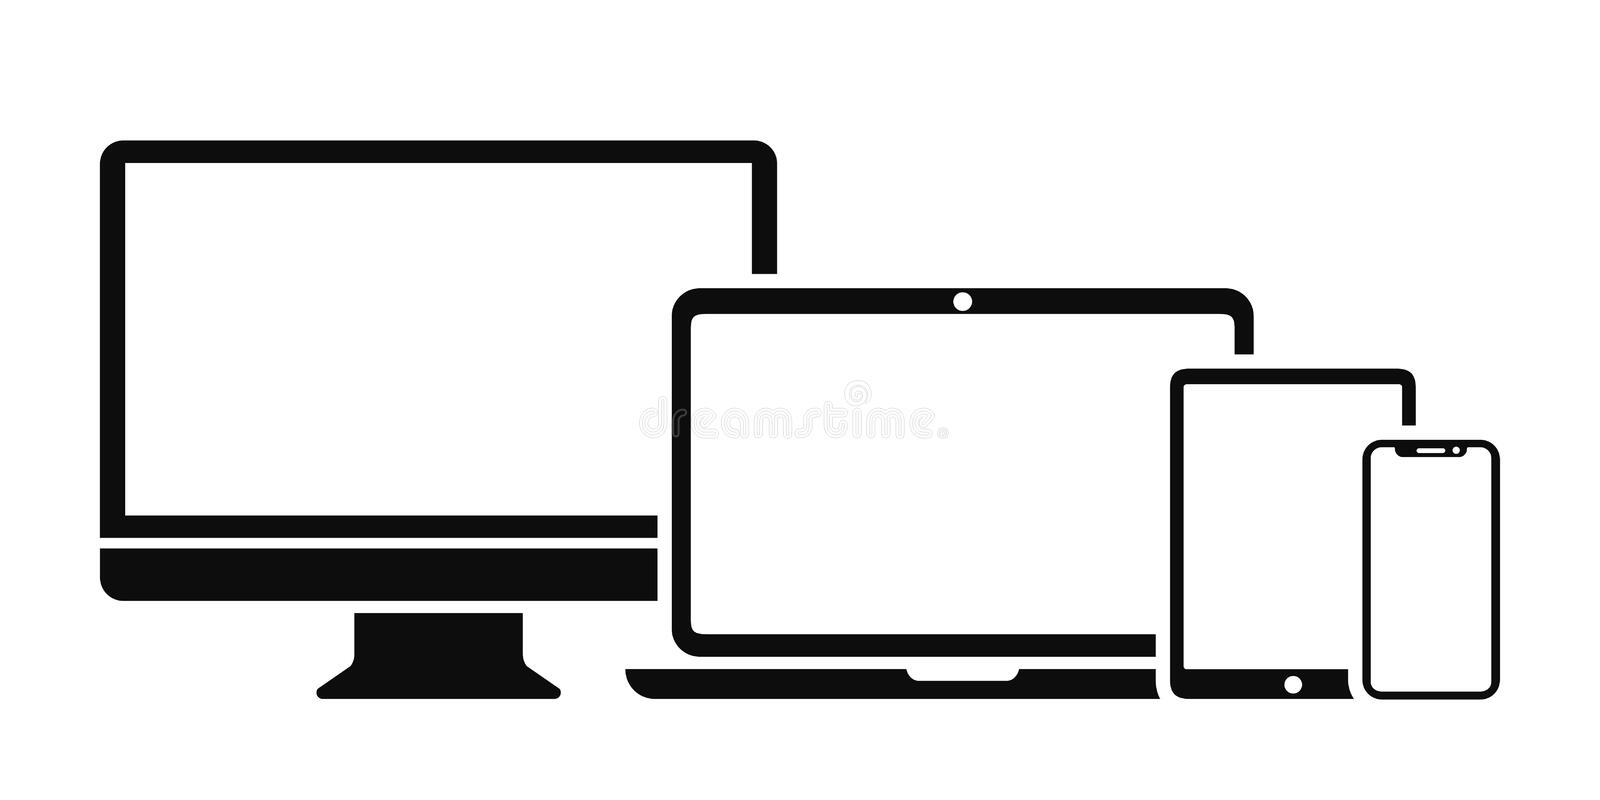 Set technology devices icon: computer, laptop, tablet and smartphone screen icon for web development apps and websites stock illustration